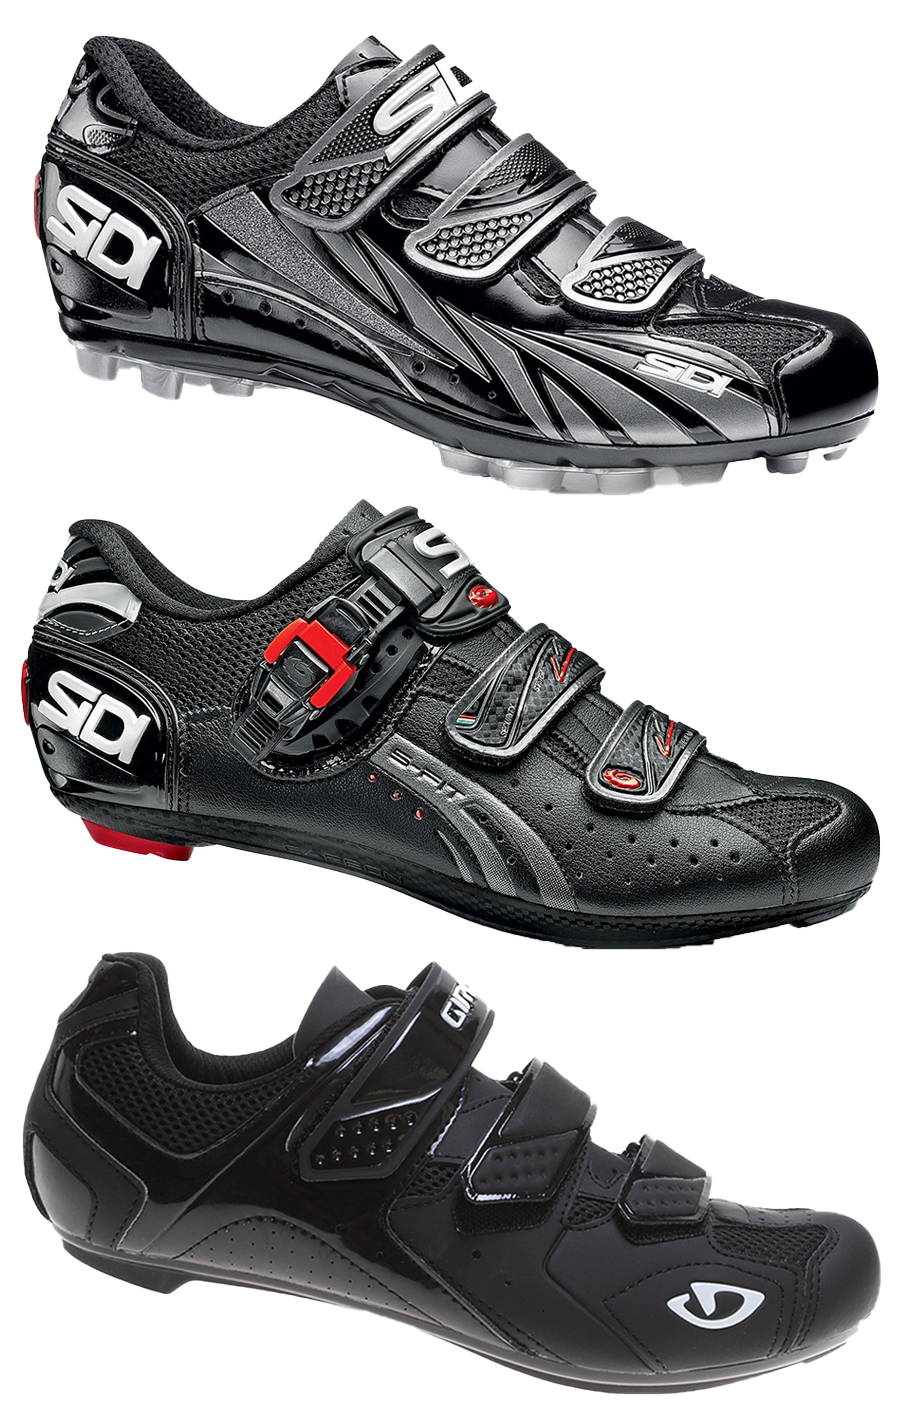 db0c126e7 Cycling Shoes   Cleats Guide